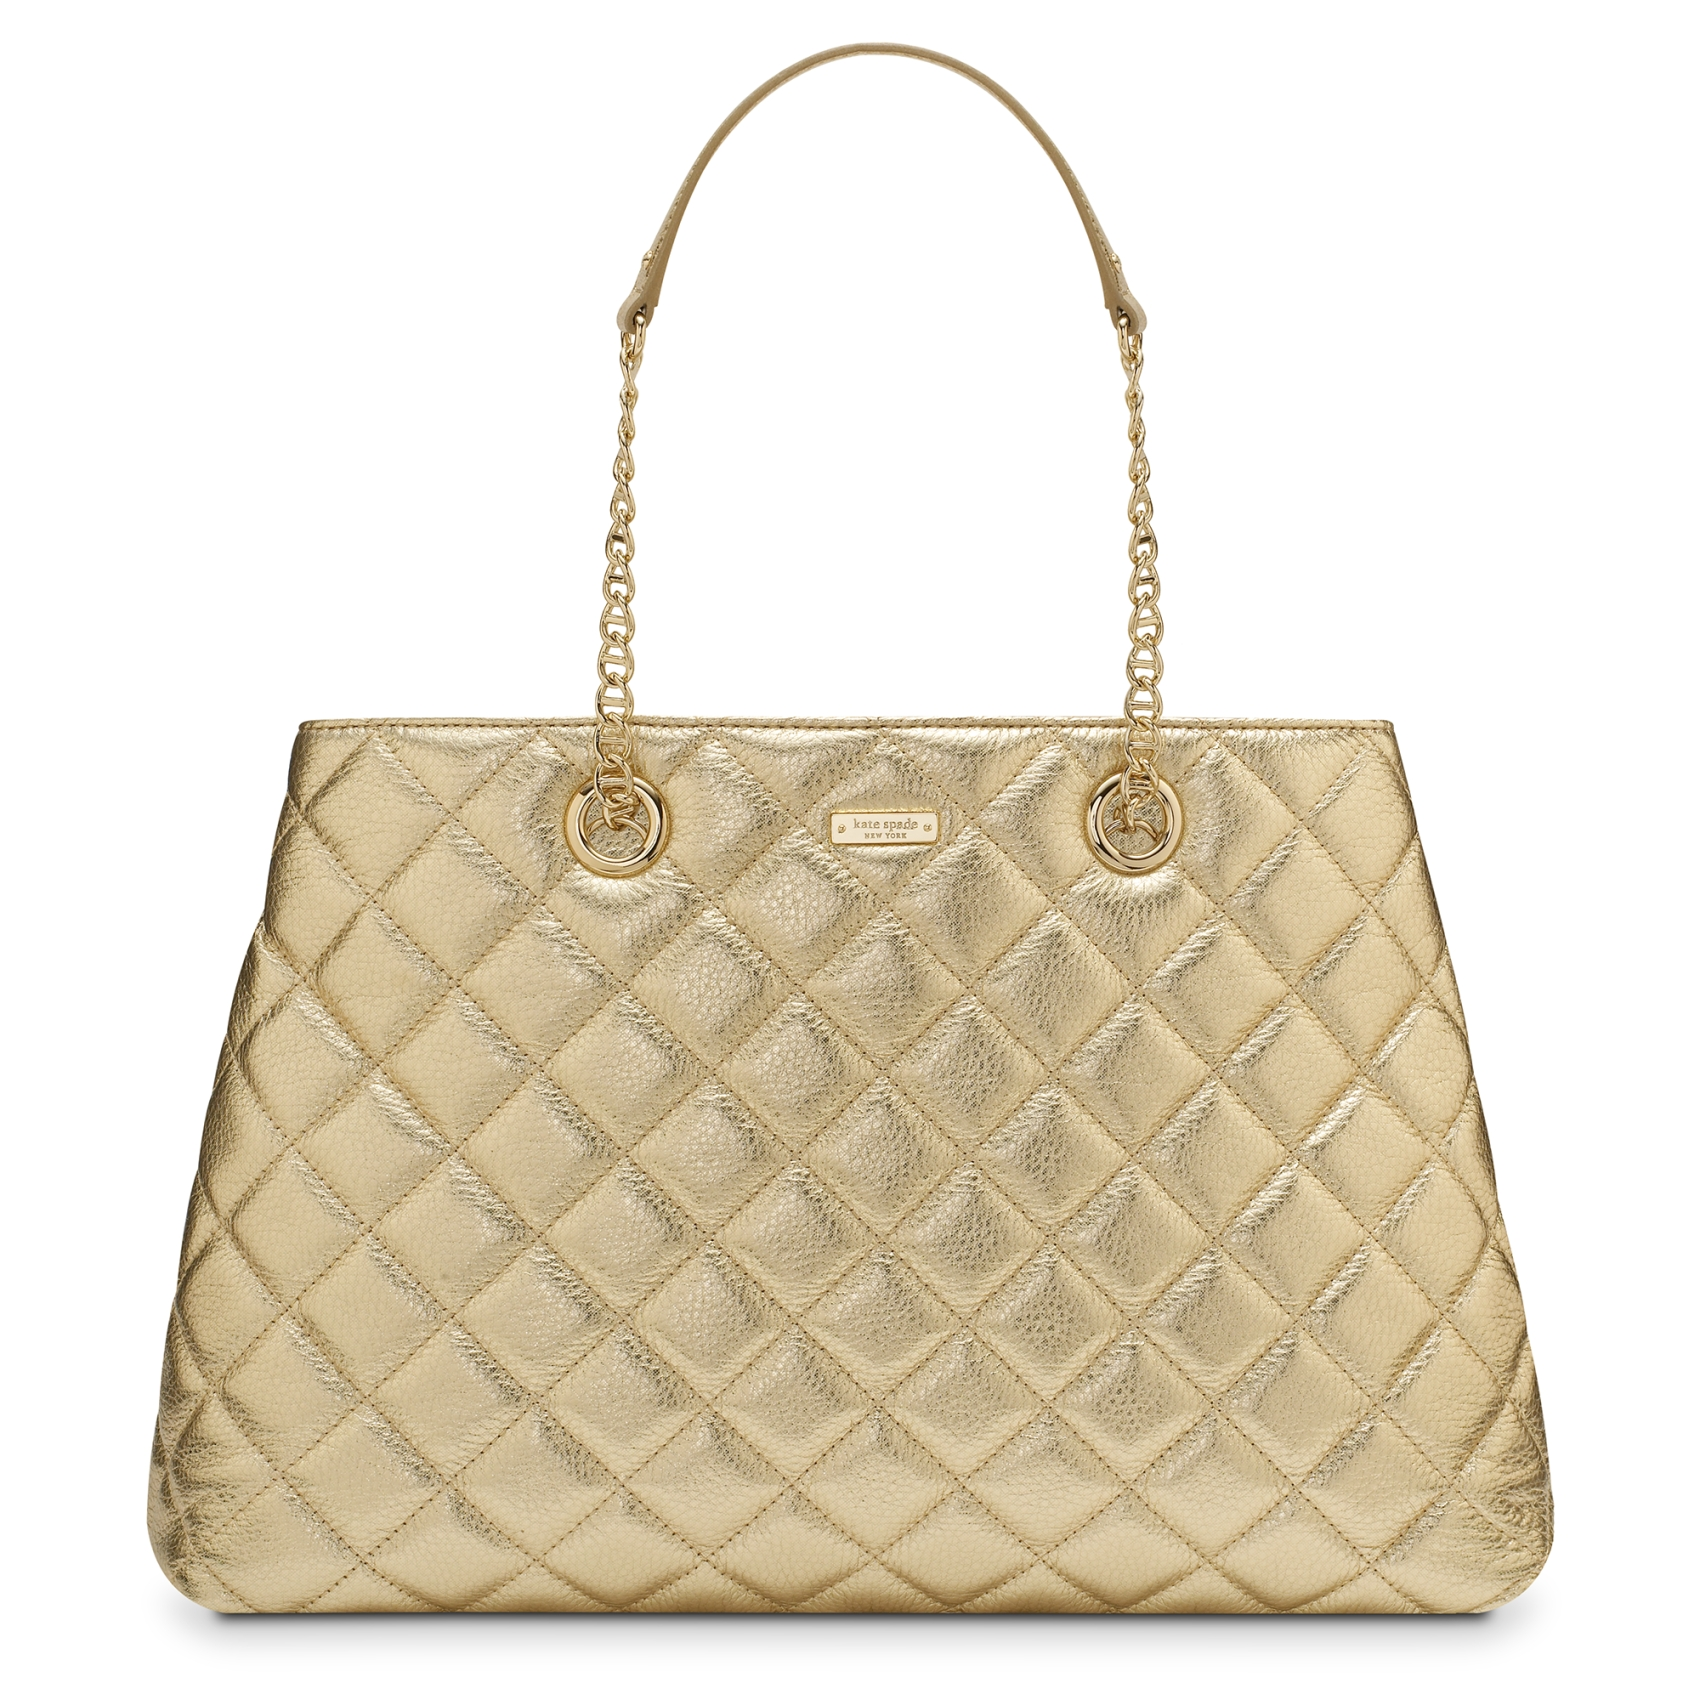 Sold Out Bnwt Kate Spade Gold Coast Maryanne Tote Bag